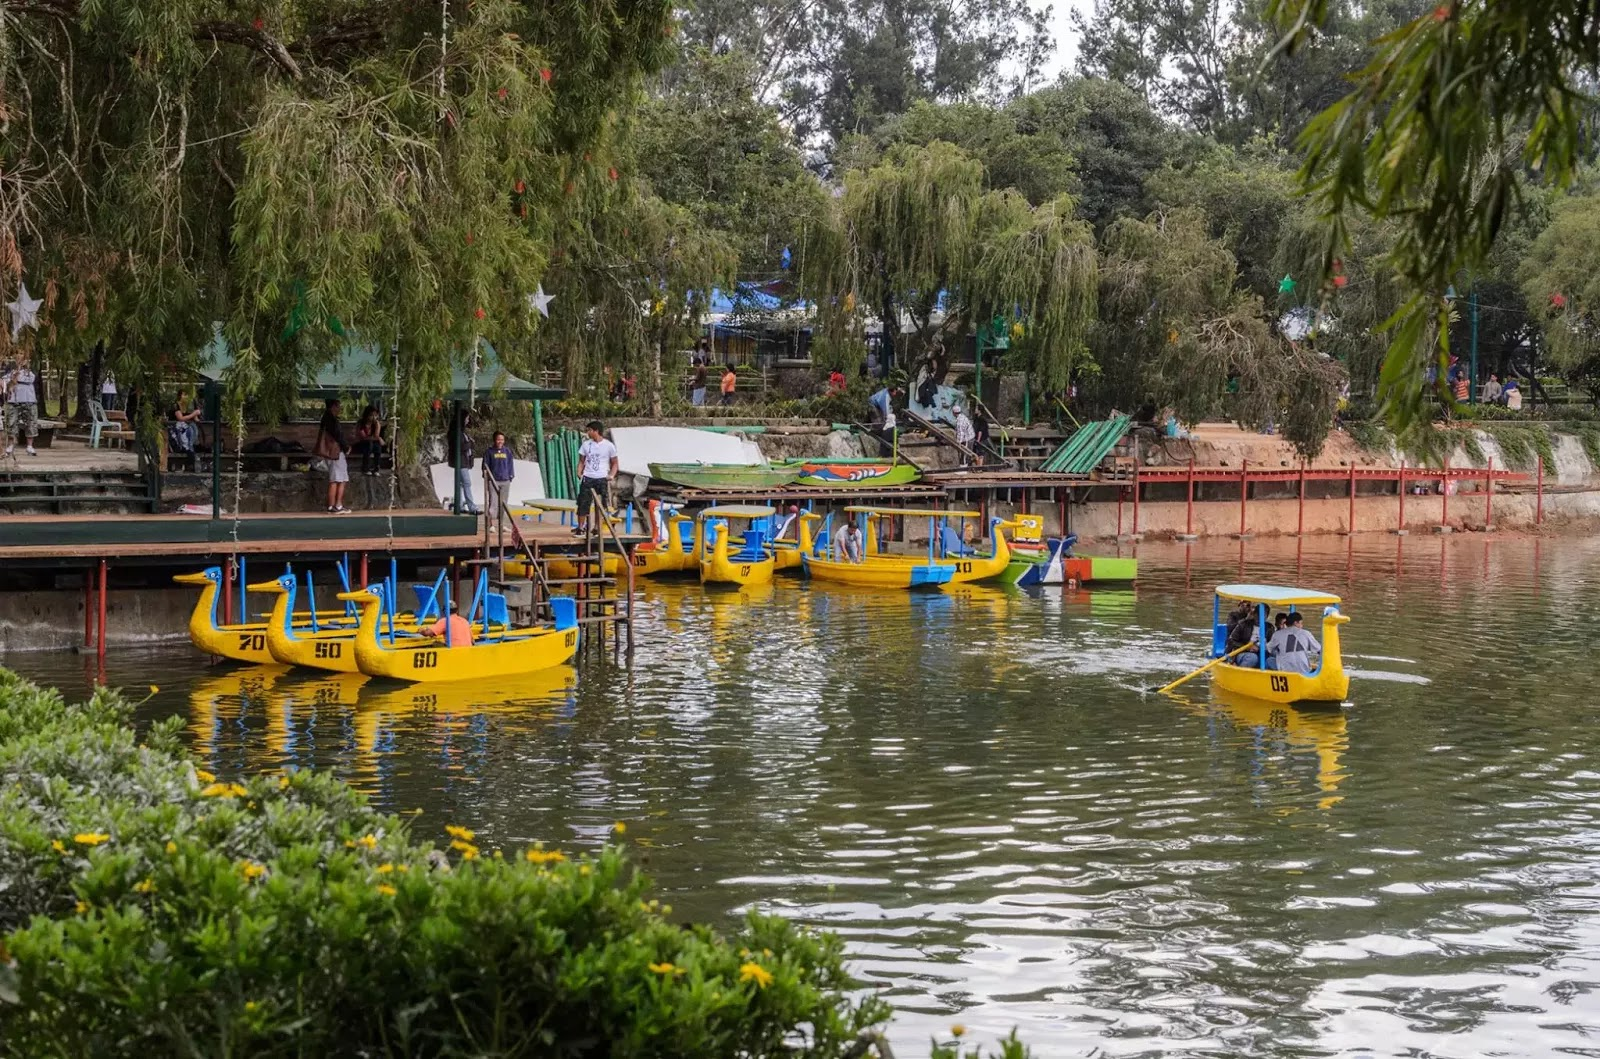 Yellow Boats First to Service Boat Rides Burnham Lake Fresh Water Refill Baguio City Philippines